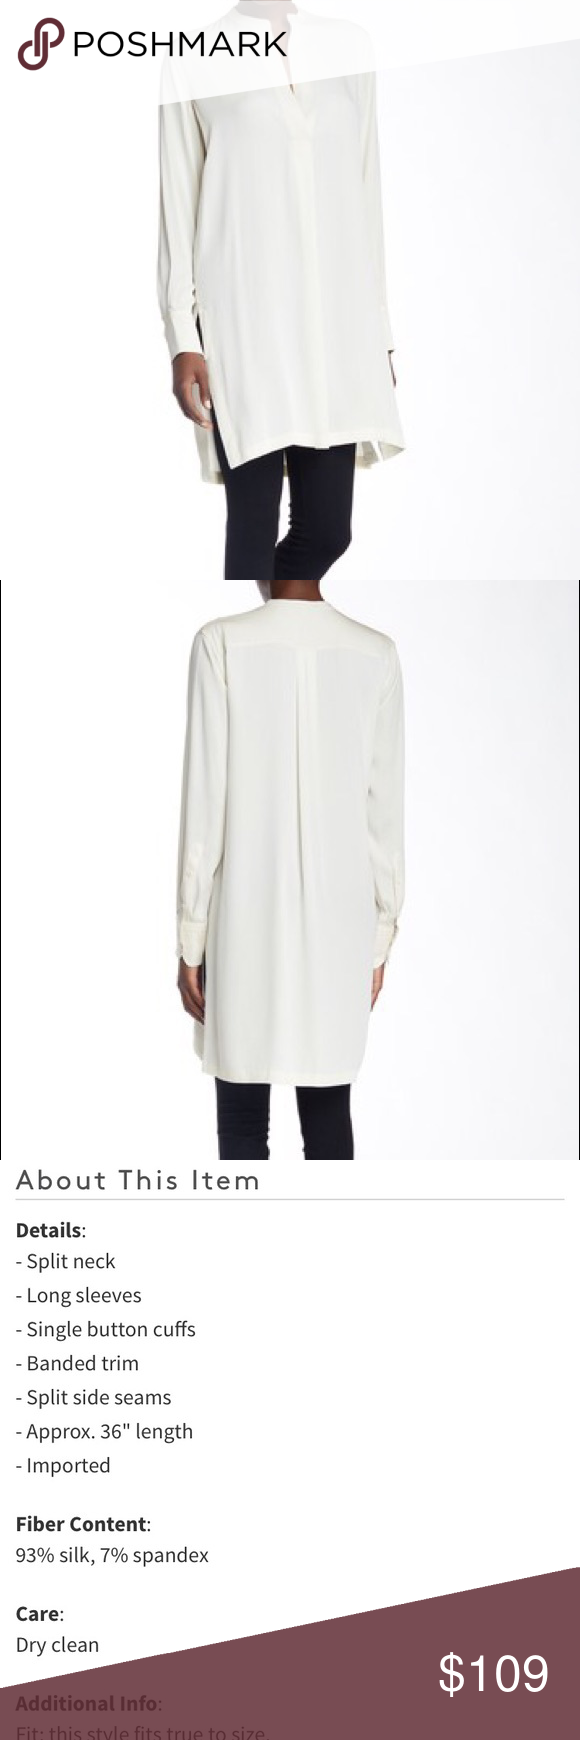 Helmut Lang Silk Blend Split Neck Tunic Blouse Helmut Lang Silk Blend Split Neck Tunic Blouse. Size: Small. Color: Ivory. Originally $370. Minor defects shown in the pics (small stains and some pulled threads). The defects can easily be covered up, especially with your hair down. Helmut Lang Tops Blouses